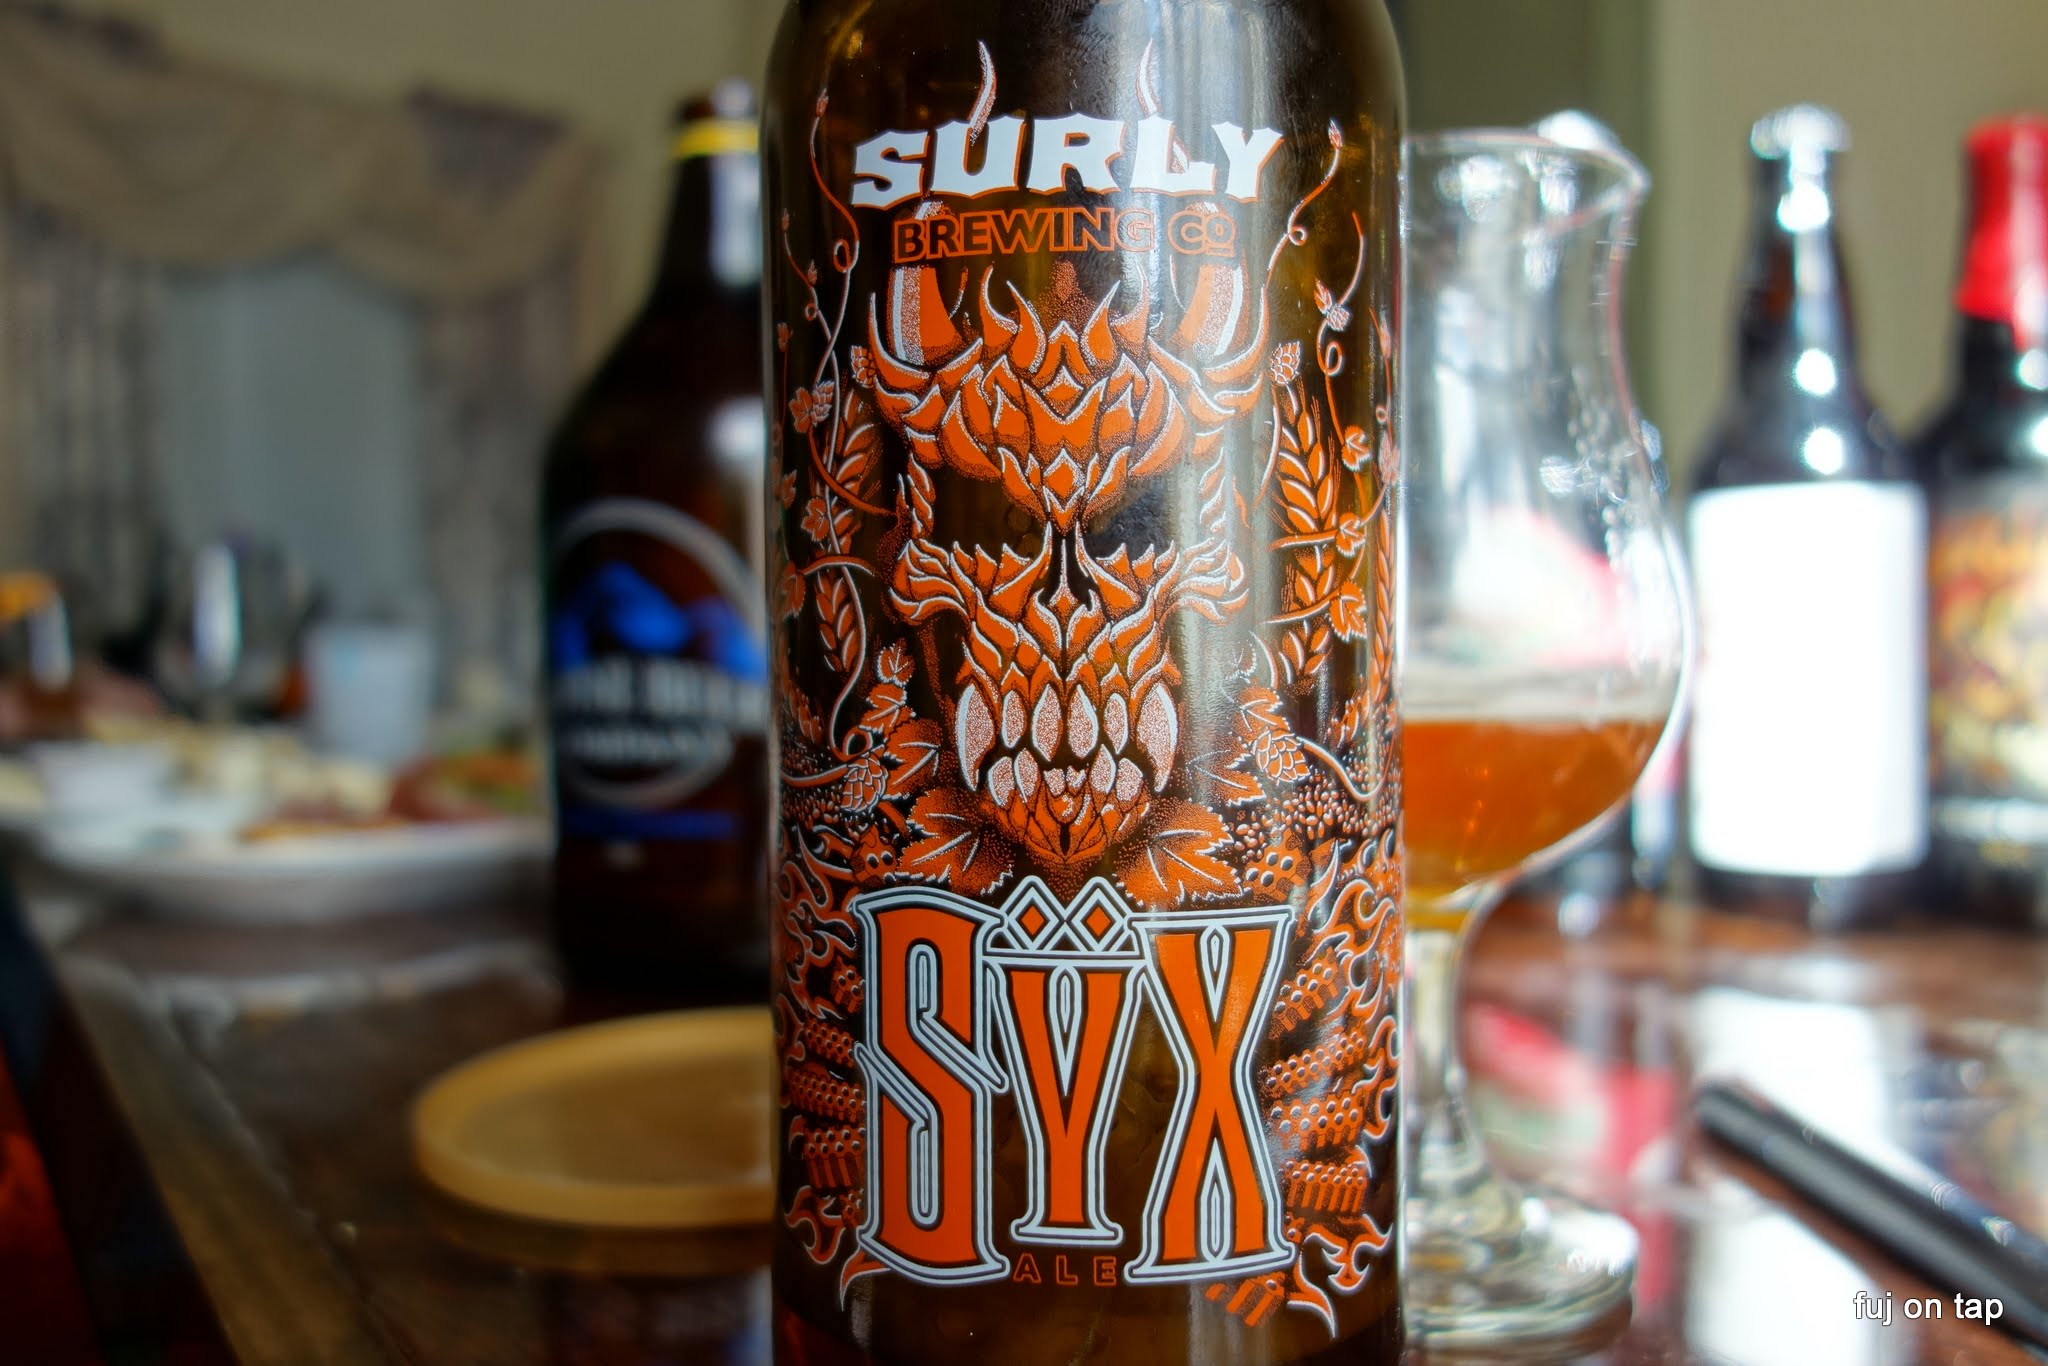 Surly Syx